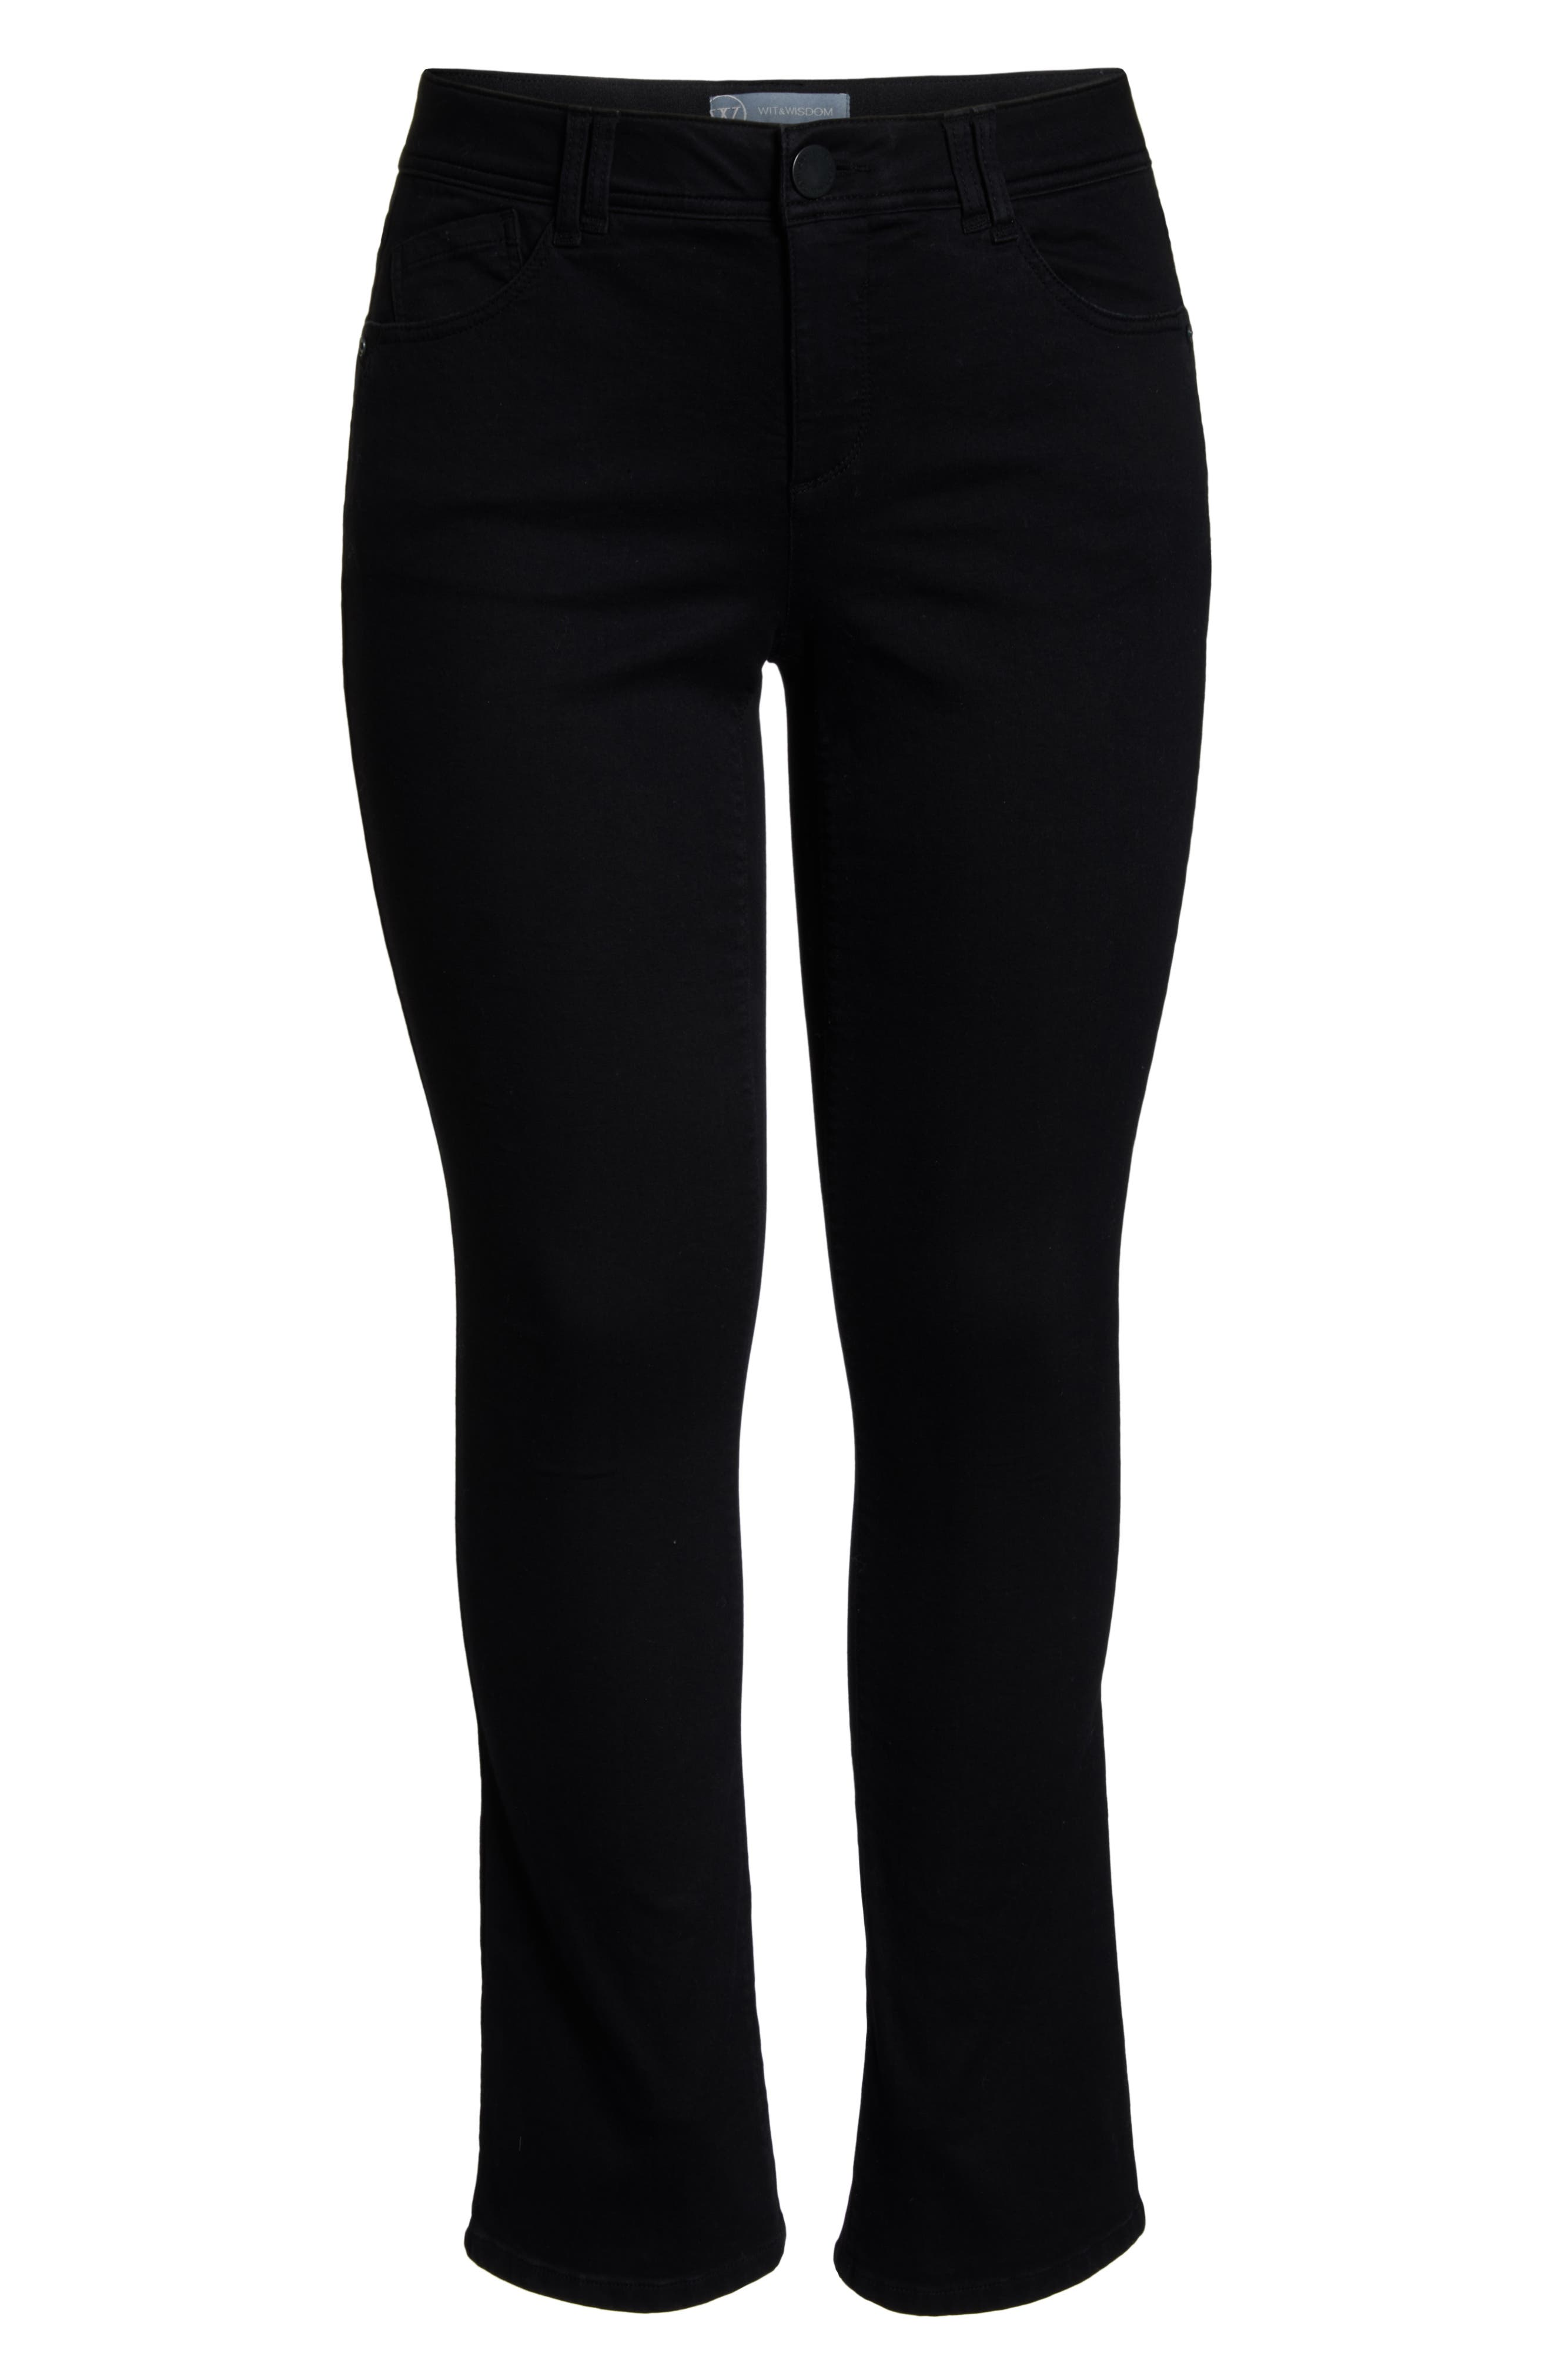 Ab-solution Itty Bitty Bootcut Jeans,                             Alternate thumbnail 7, color,                             BLACK